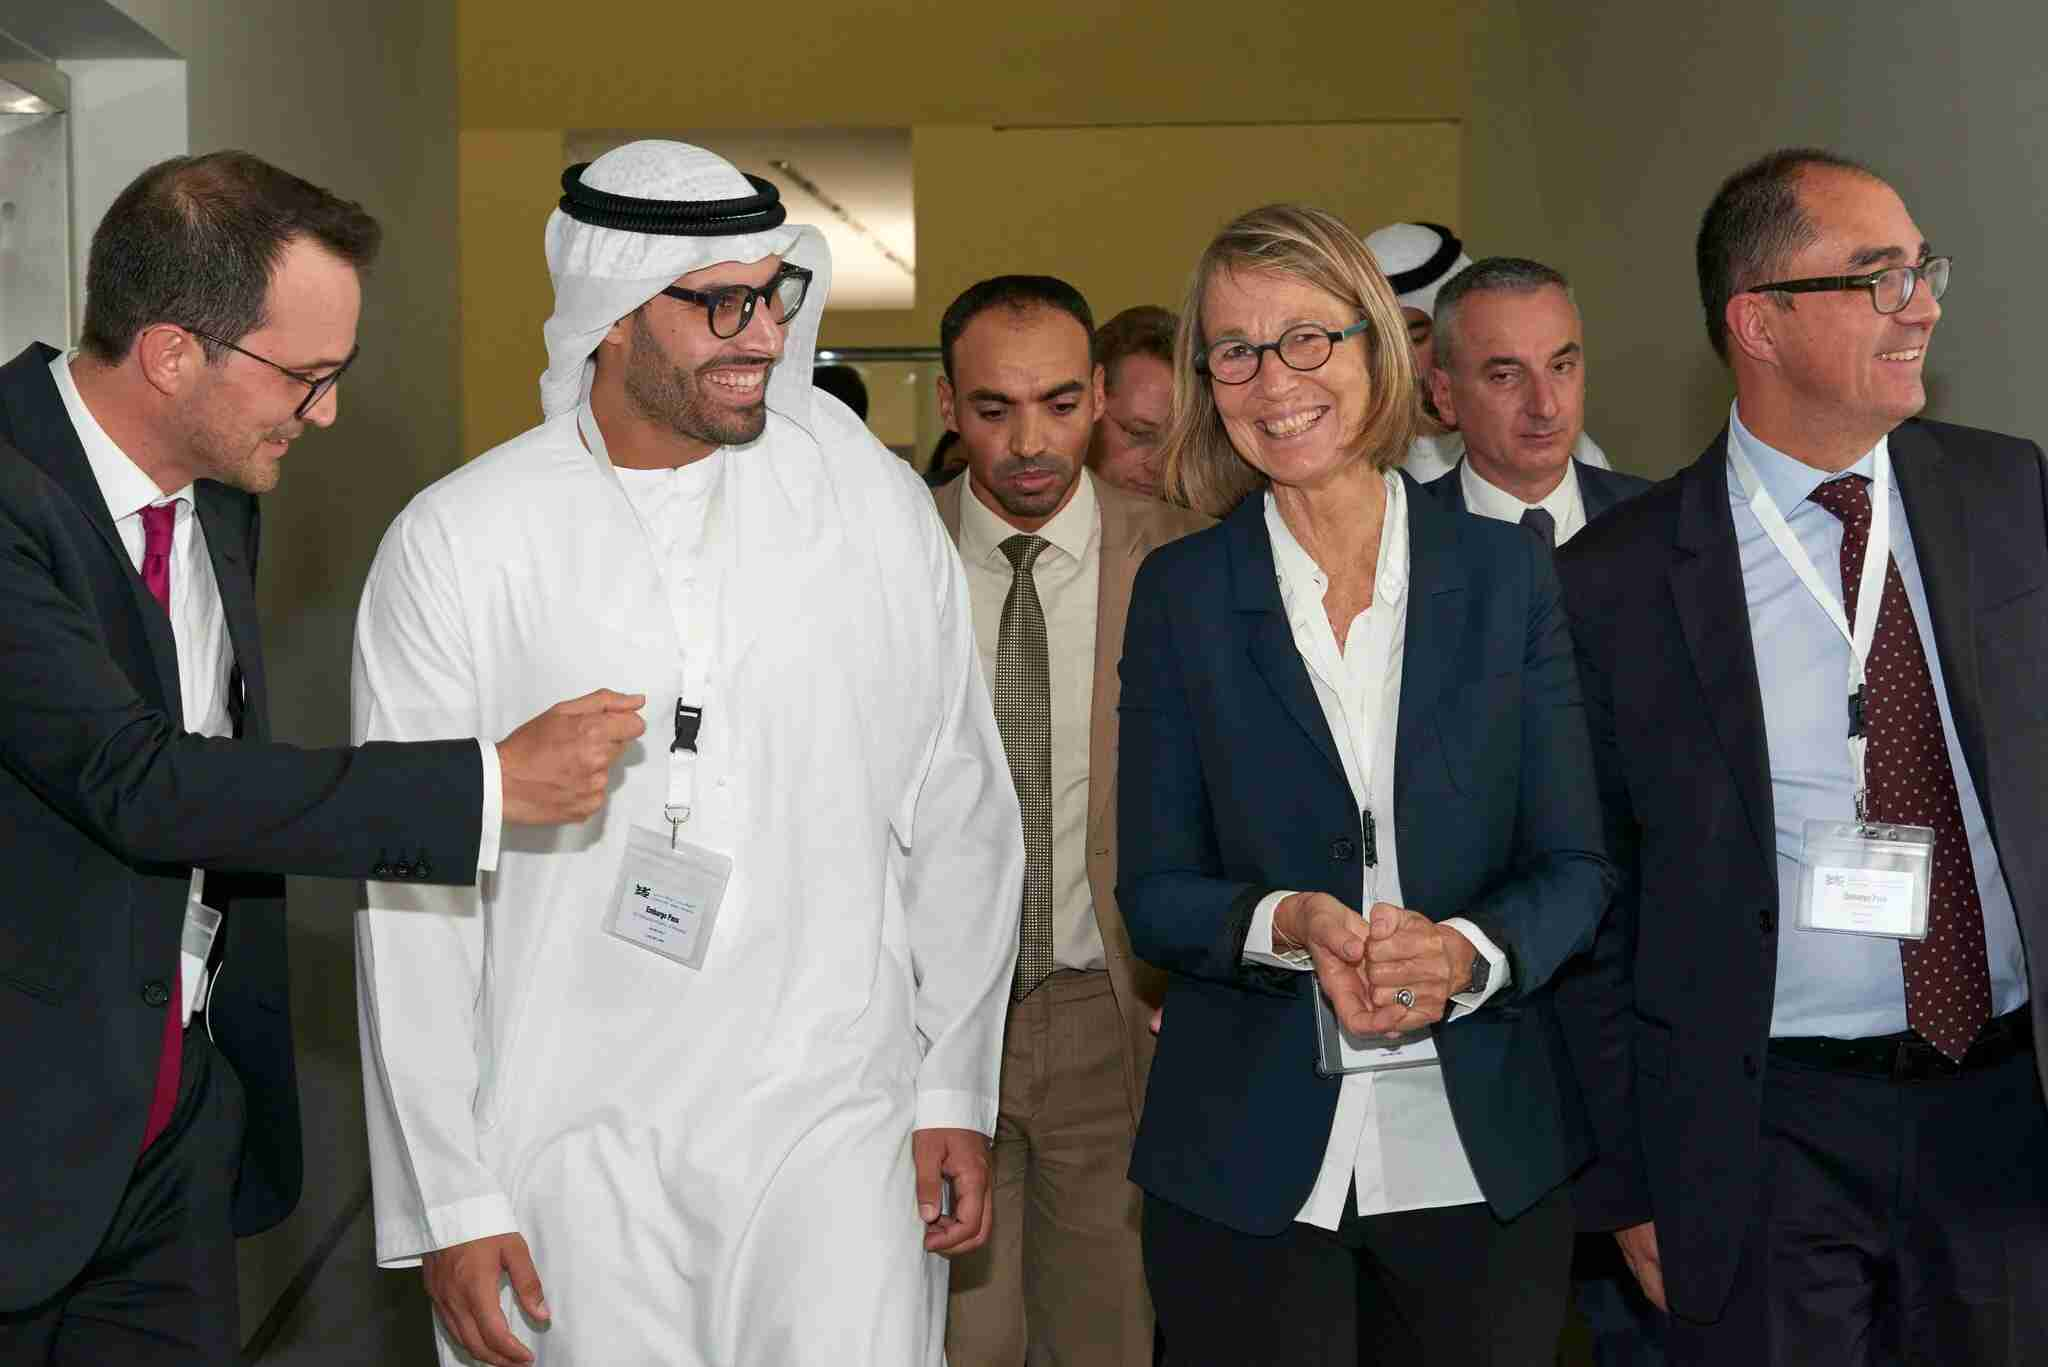 His Excellency Mohamed Khalifa Al Mubarak, Chairman of Abu Dhabi Tourism and Culture Authority, with Françoise Nyssen, France